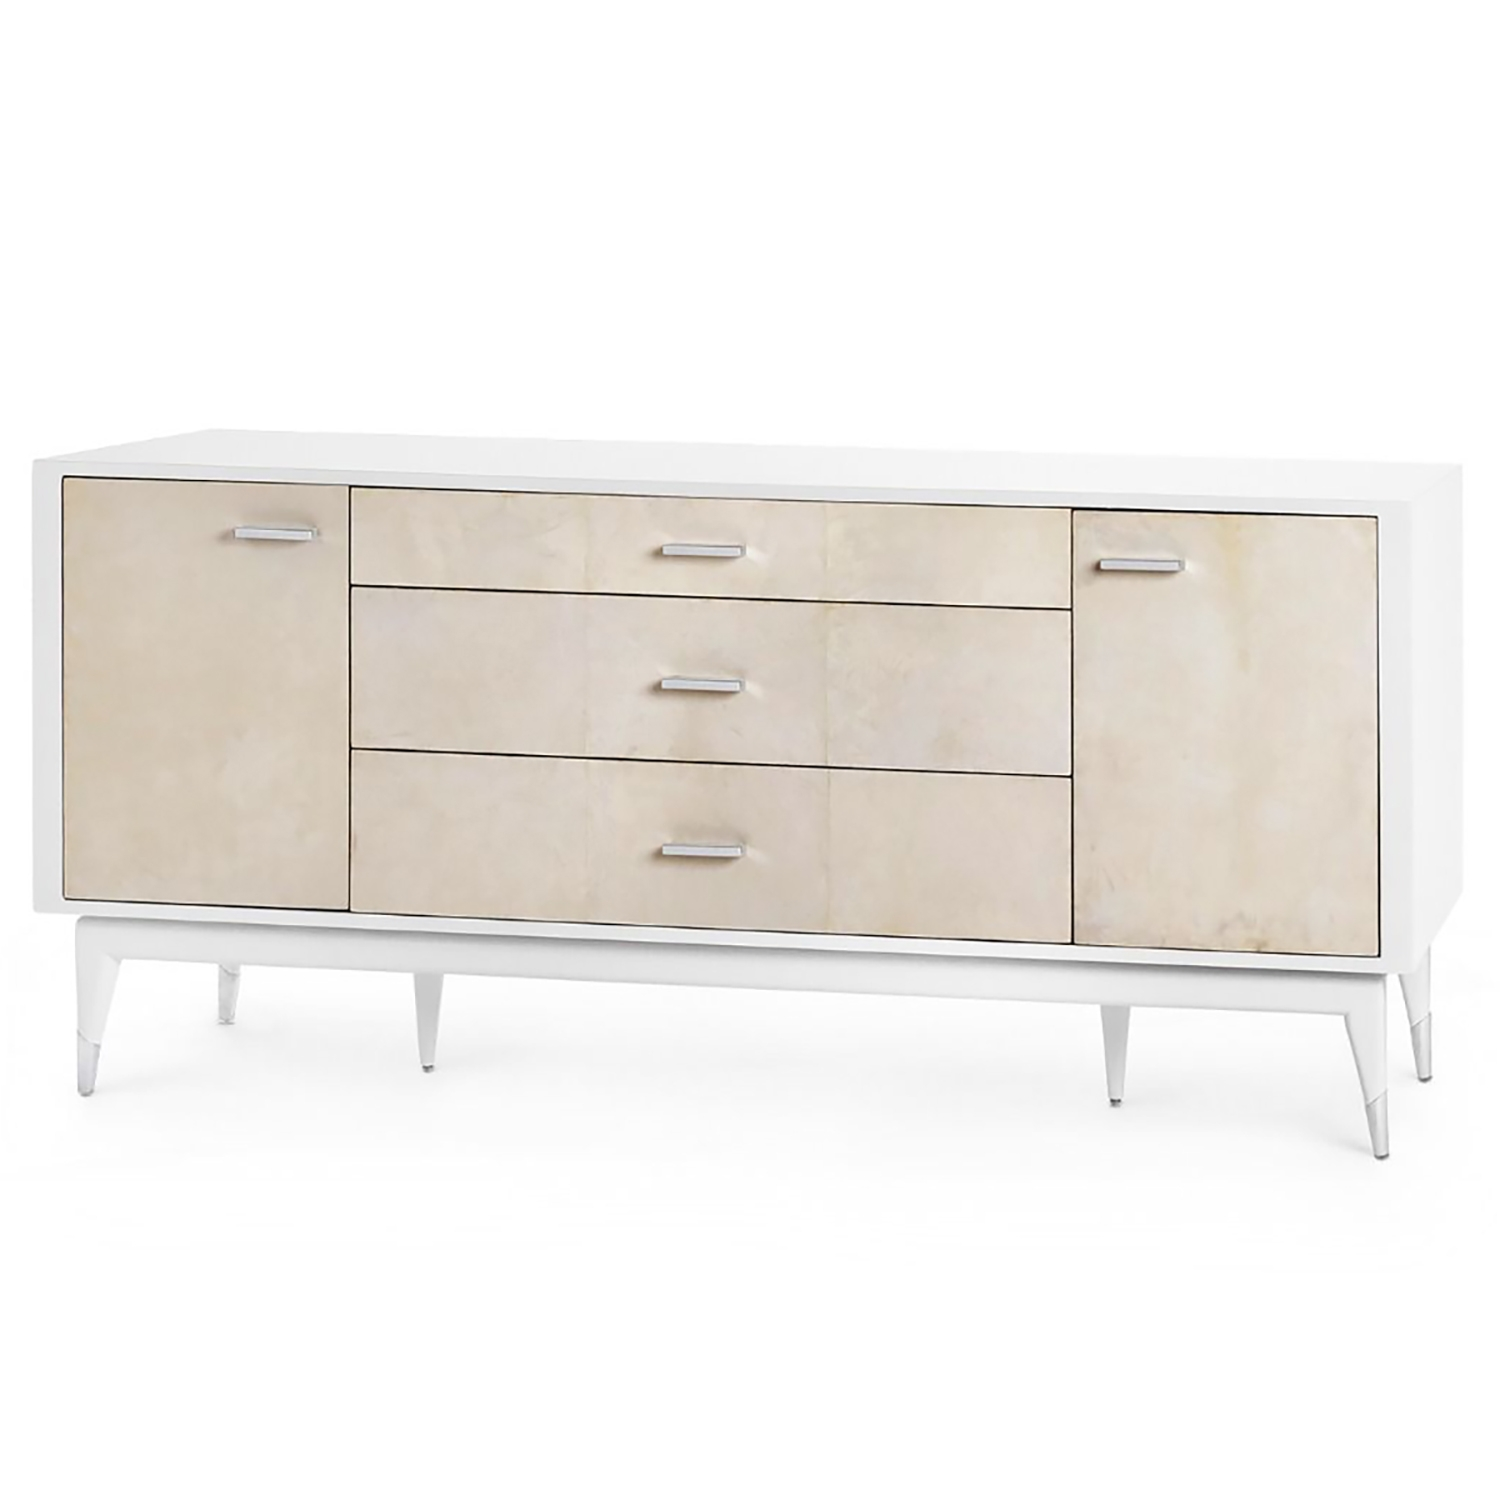 Bungalow 5 Tommi 3 Drawer 2 Door Cabinet   White